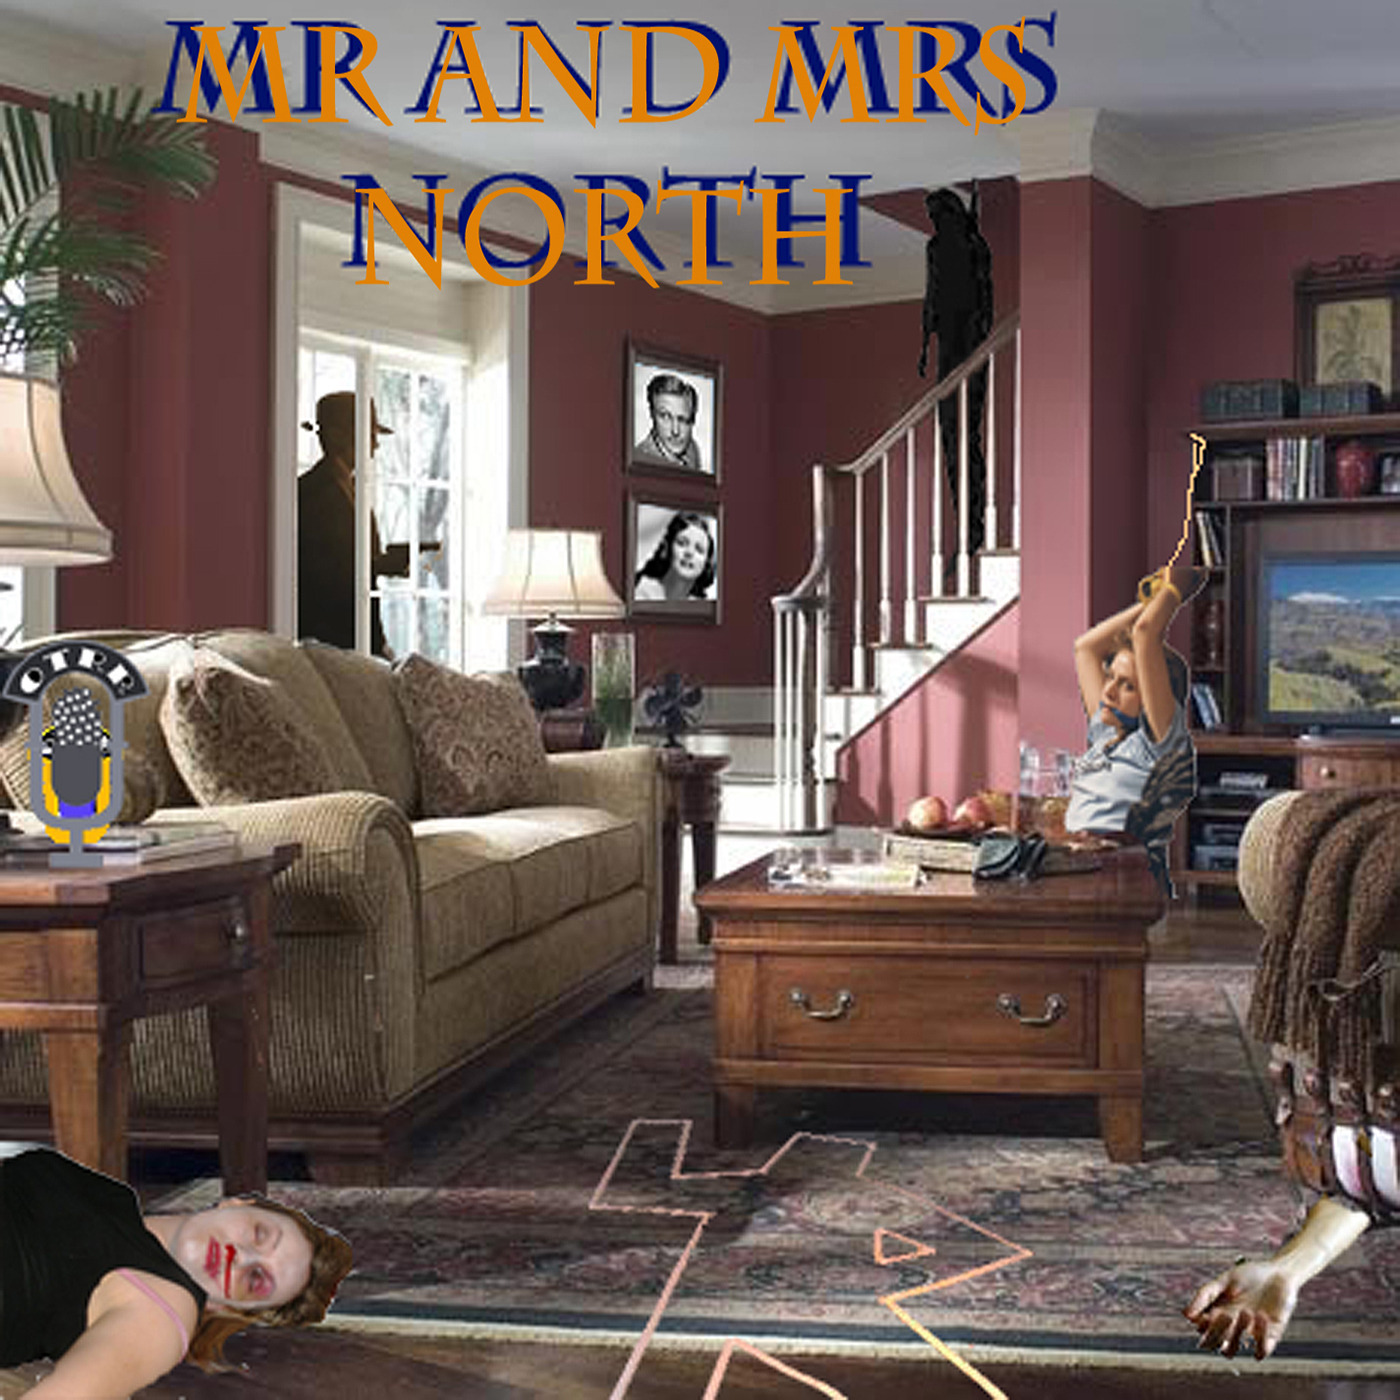 Mr. and Mrs. North